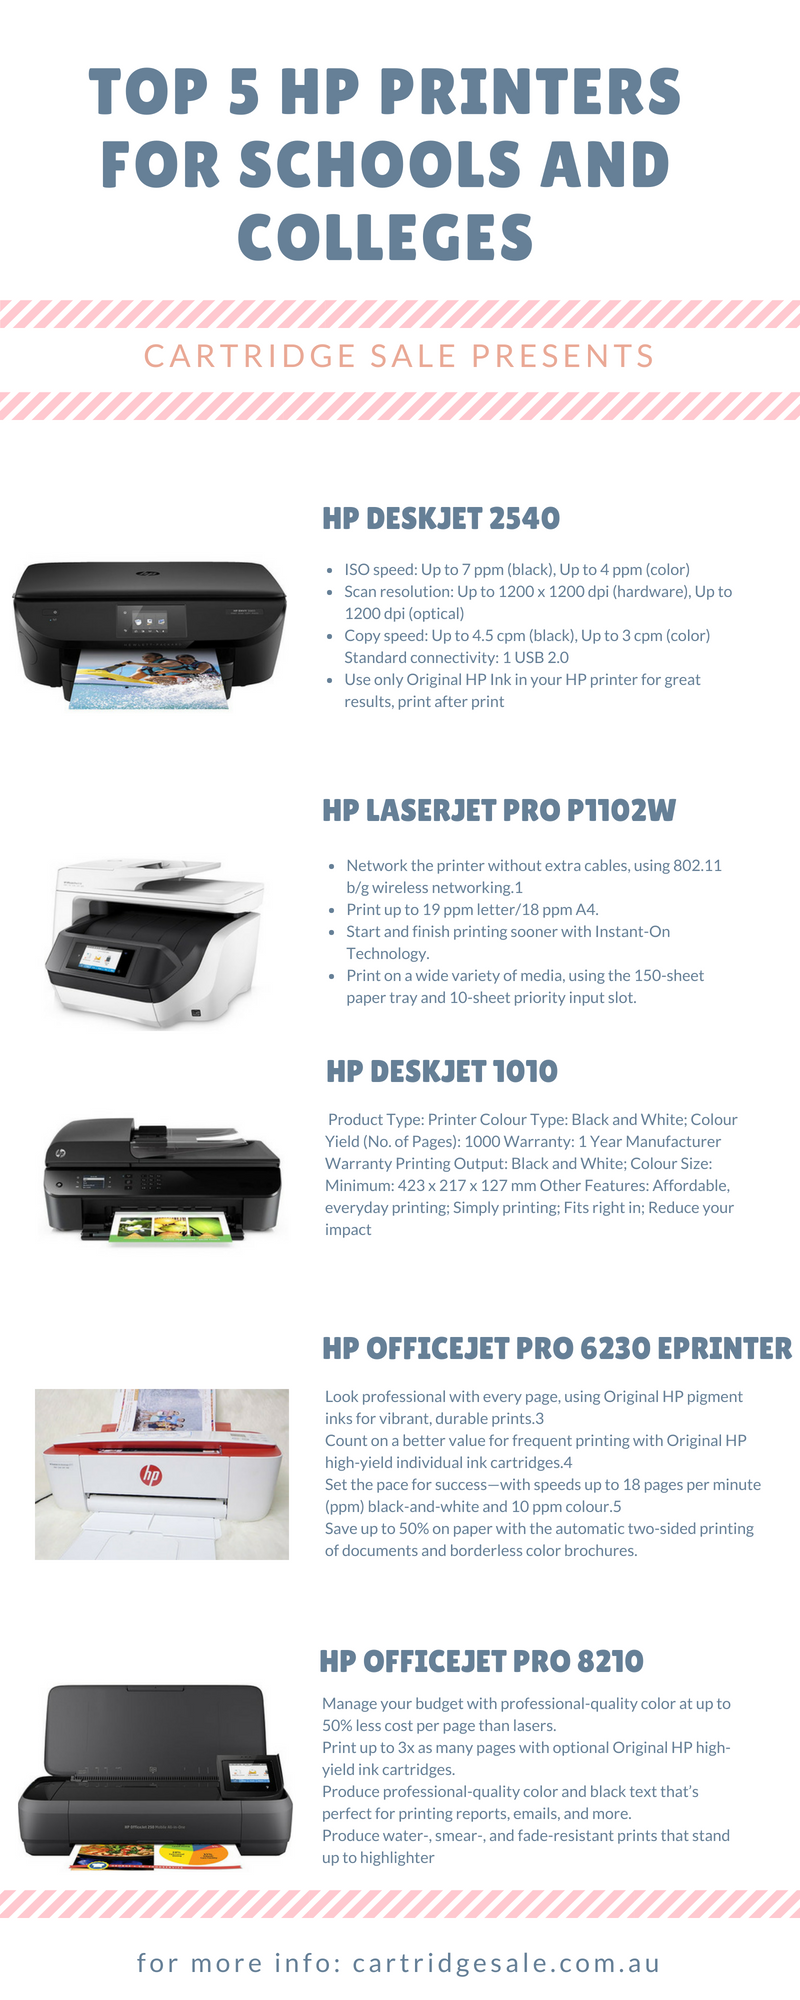 For Getting Improve Printing Quality Less Ink Cartridges